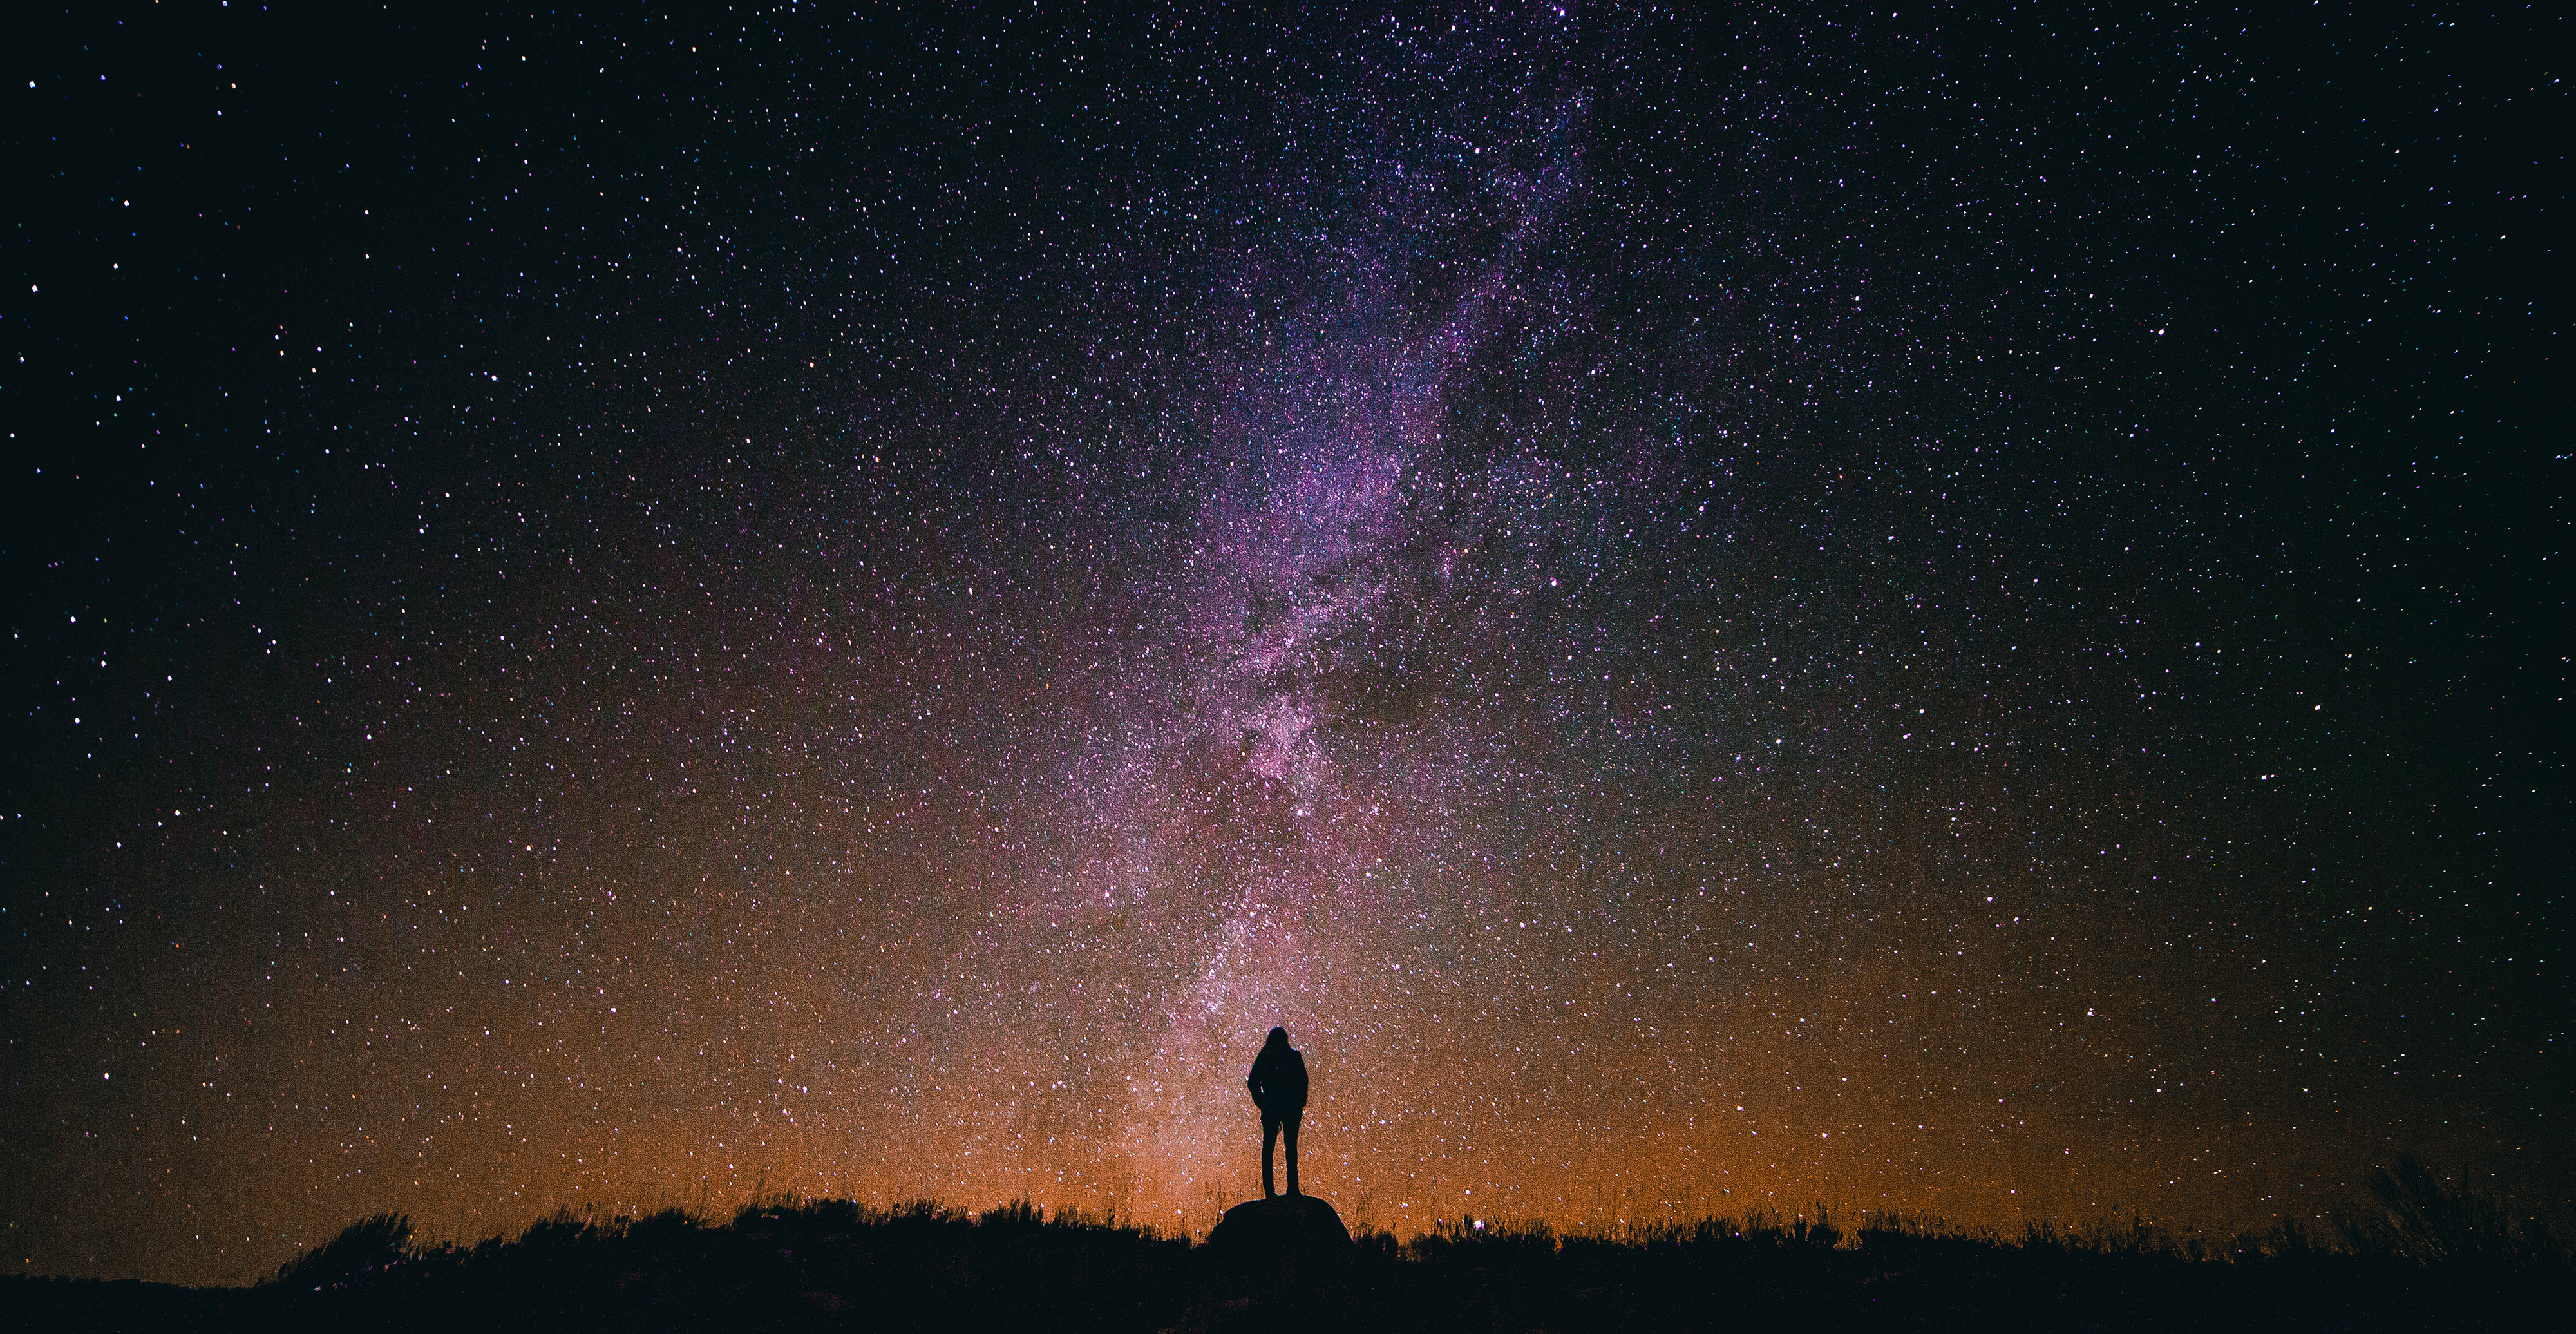 Free Stock Photo of Person standing under the Milky Way